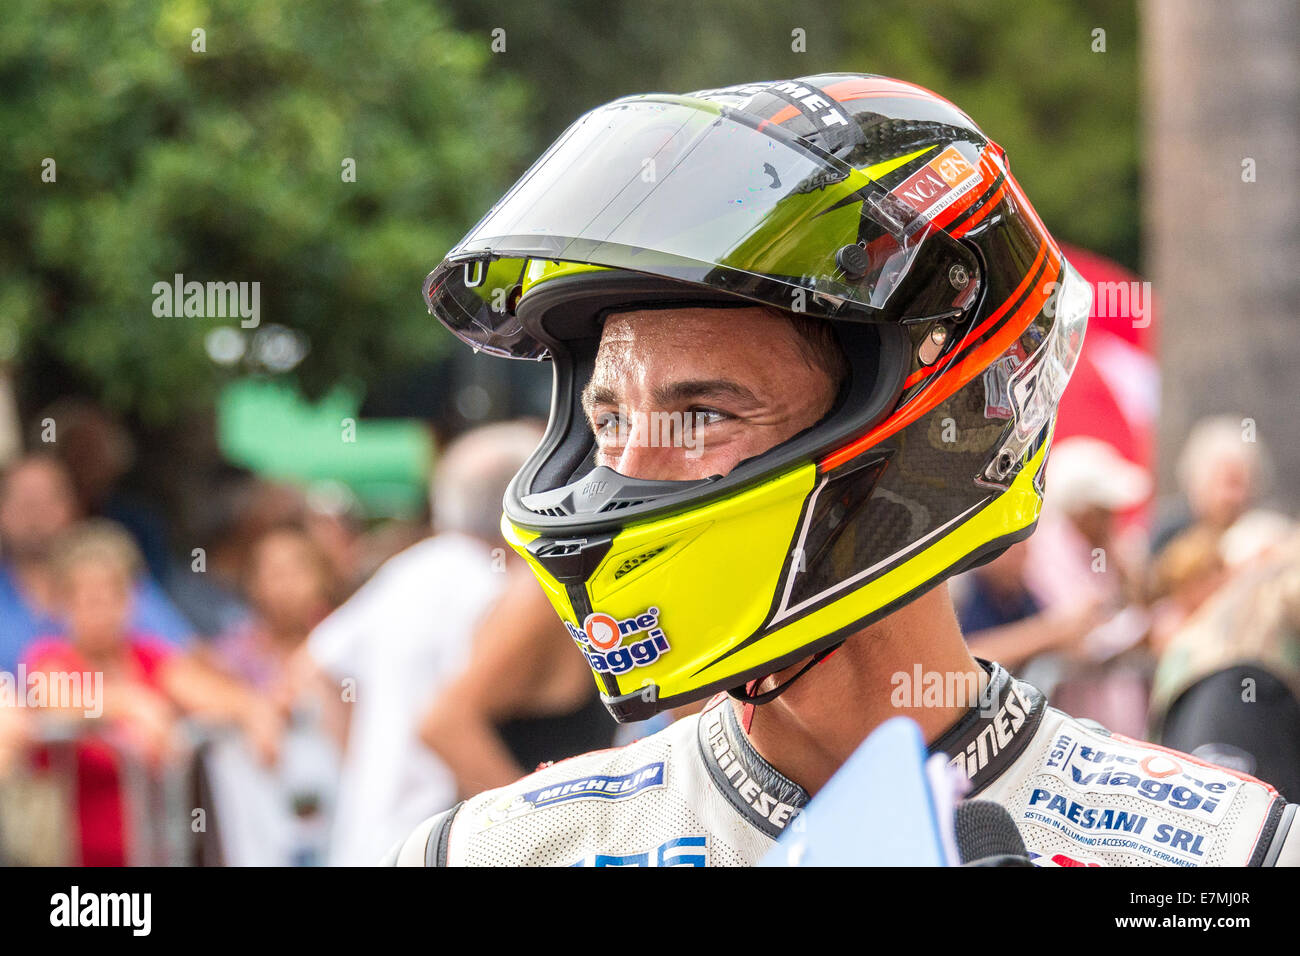 A portrait of Manuel Poggiali, former world champion of motorbike championship. Now he's racing in Italian Speed - Stock Image